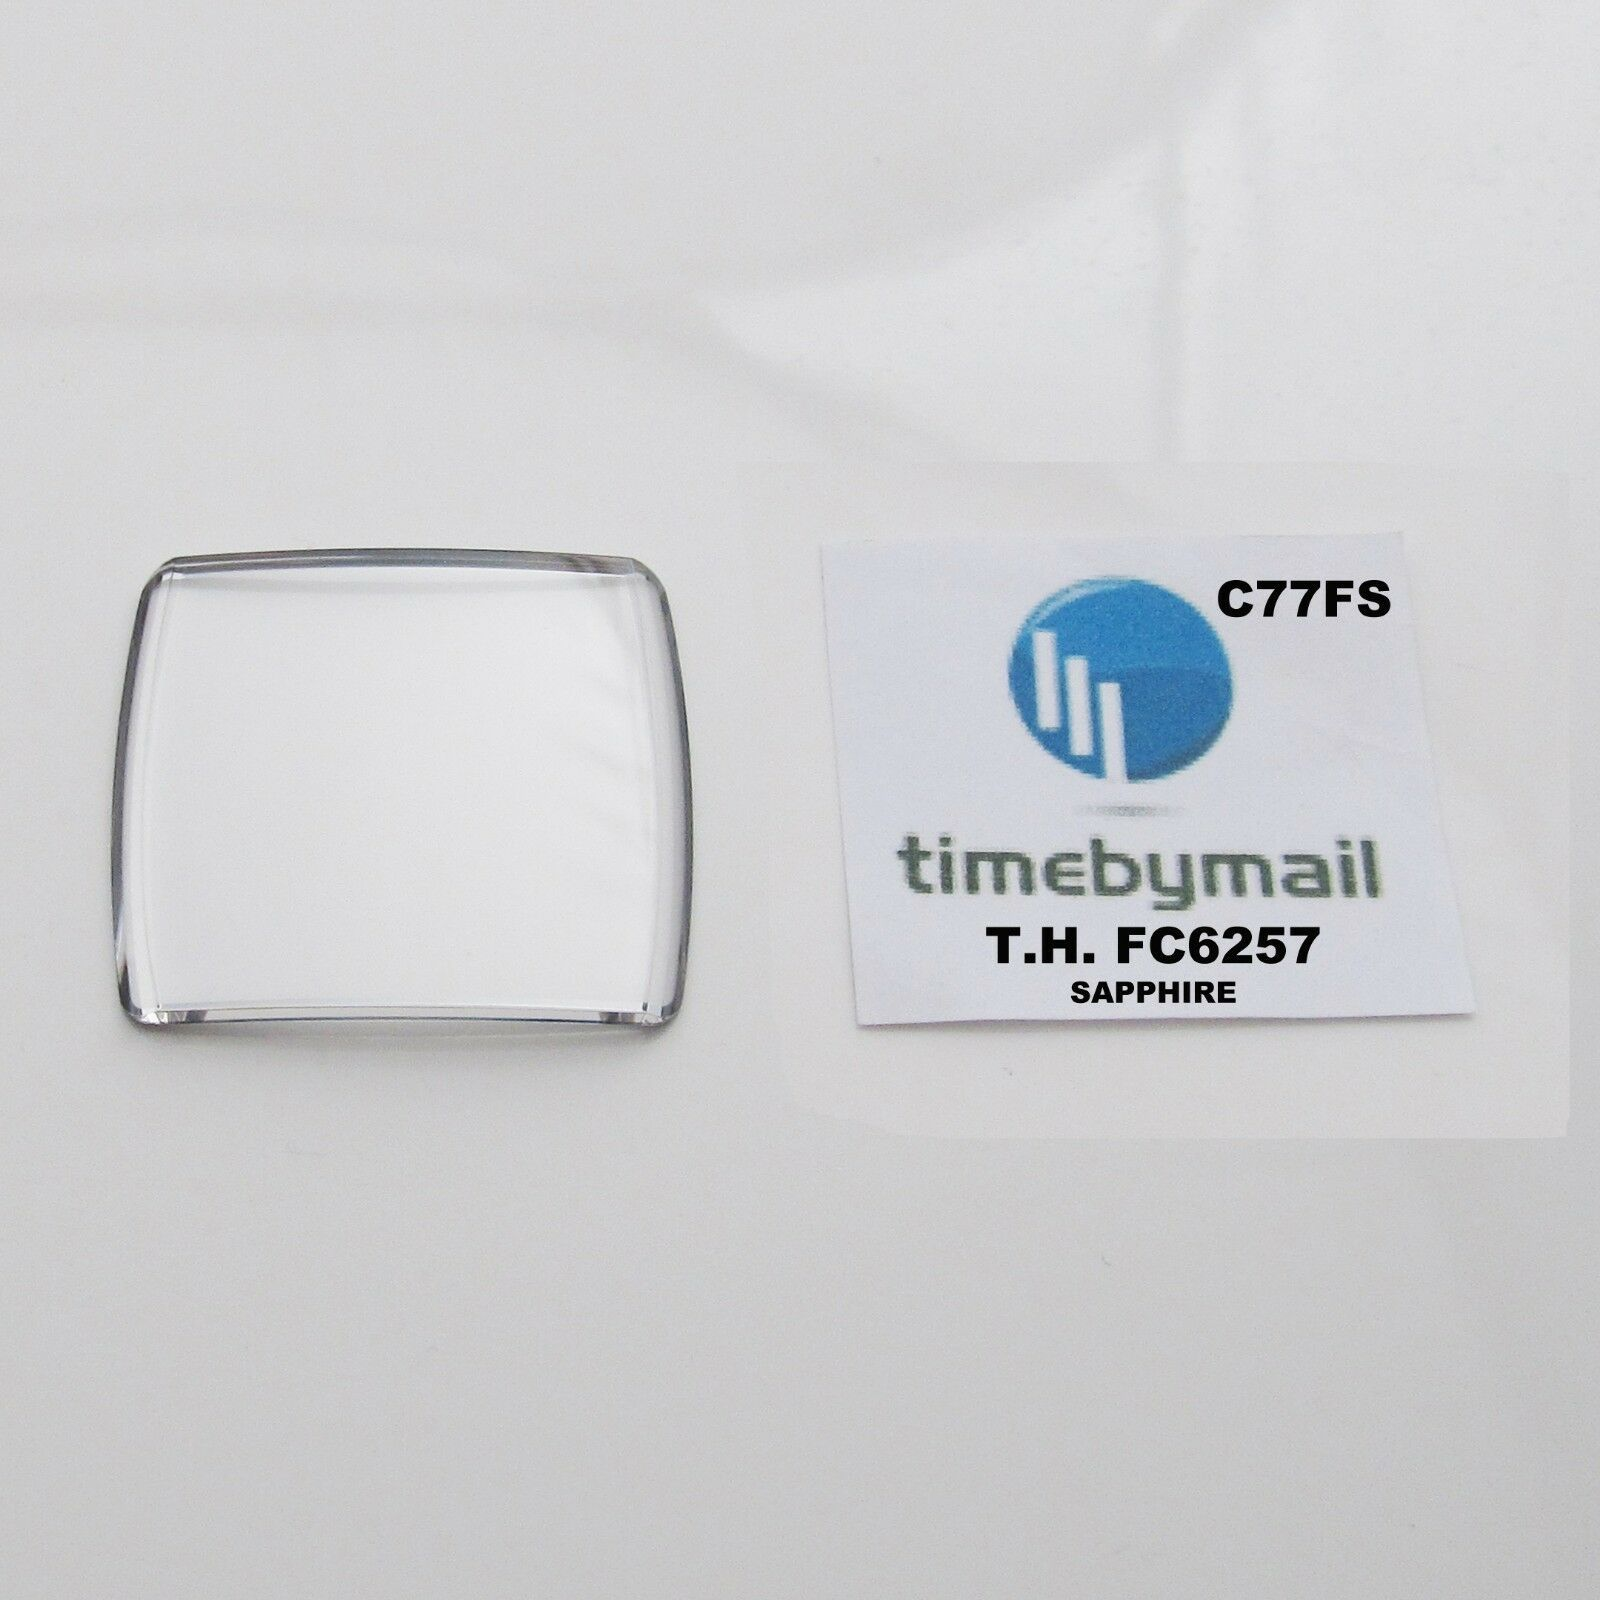 Primary image for For TAG HEUER MONACO CAL2110 FC6257.13 Sapphire Watch Crystal Spare Part C77FS